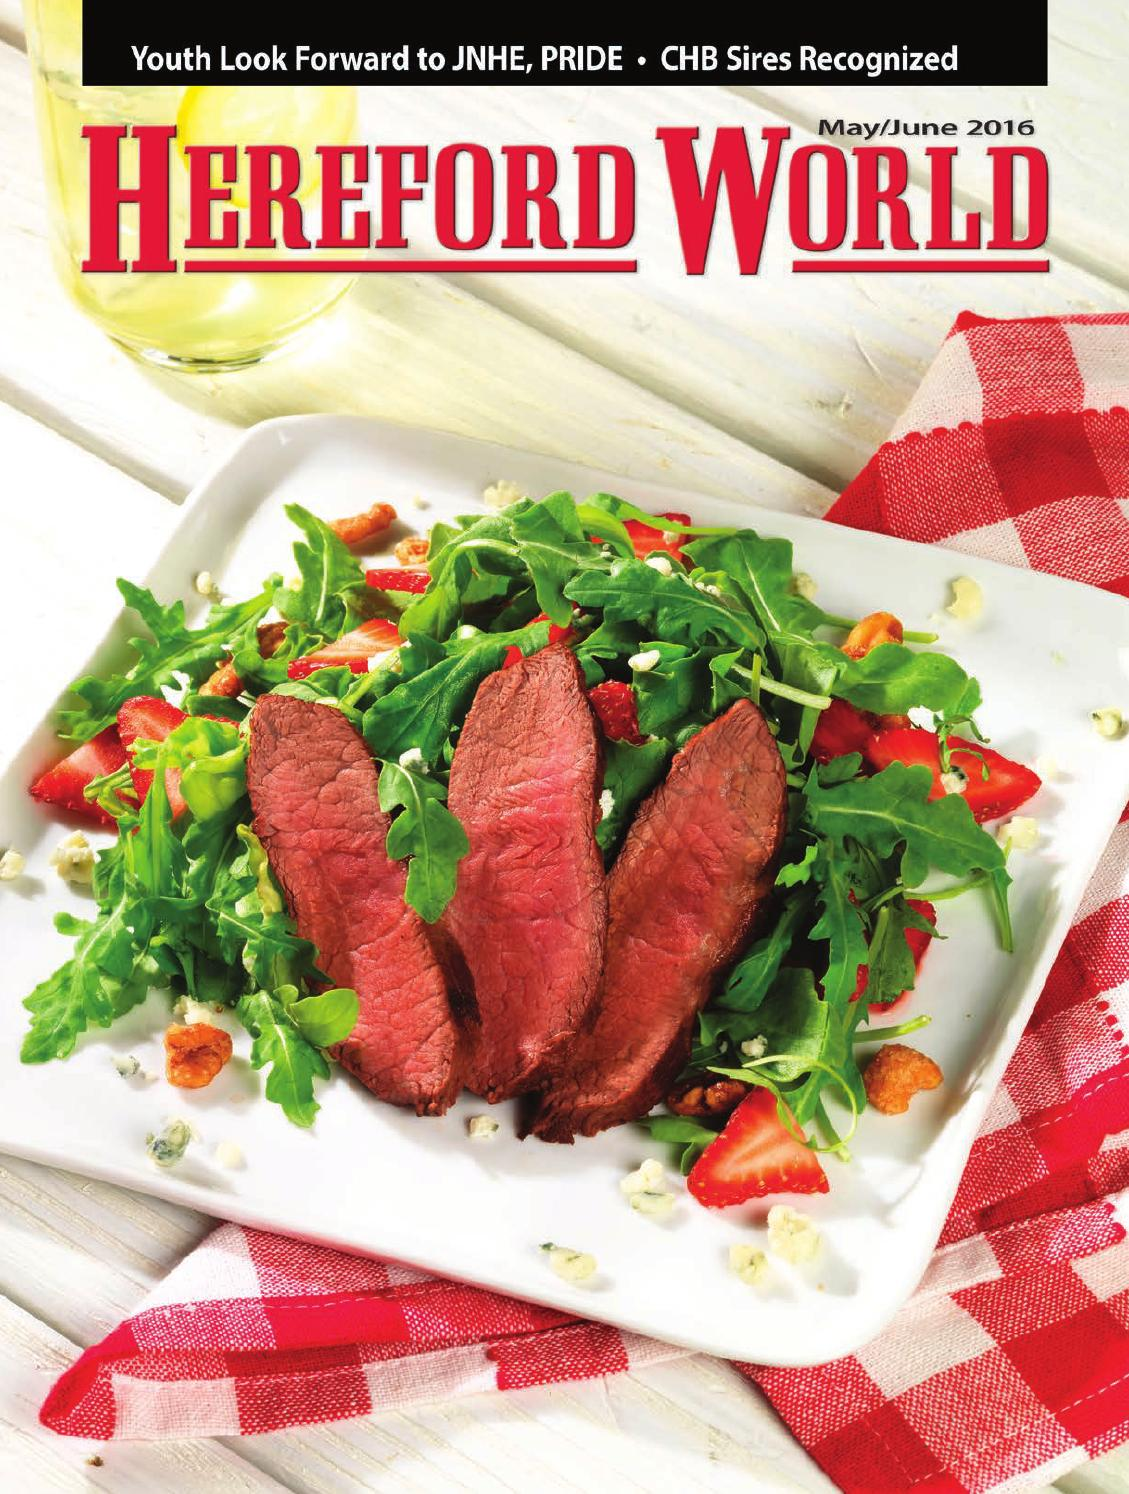 381d949ae May June 2016 Hereford World by American Hereford Association and Hereford  World - issuu